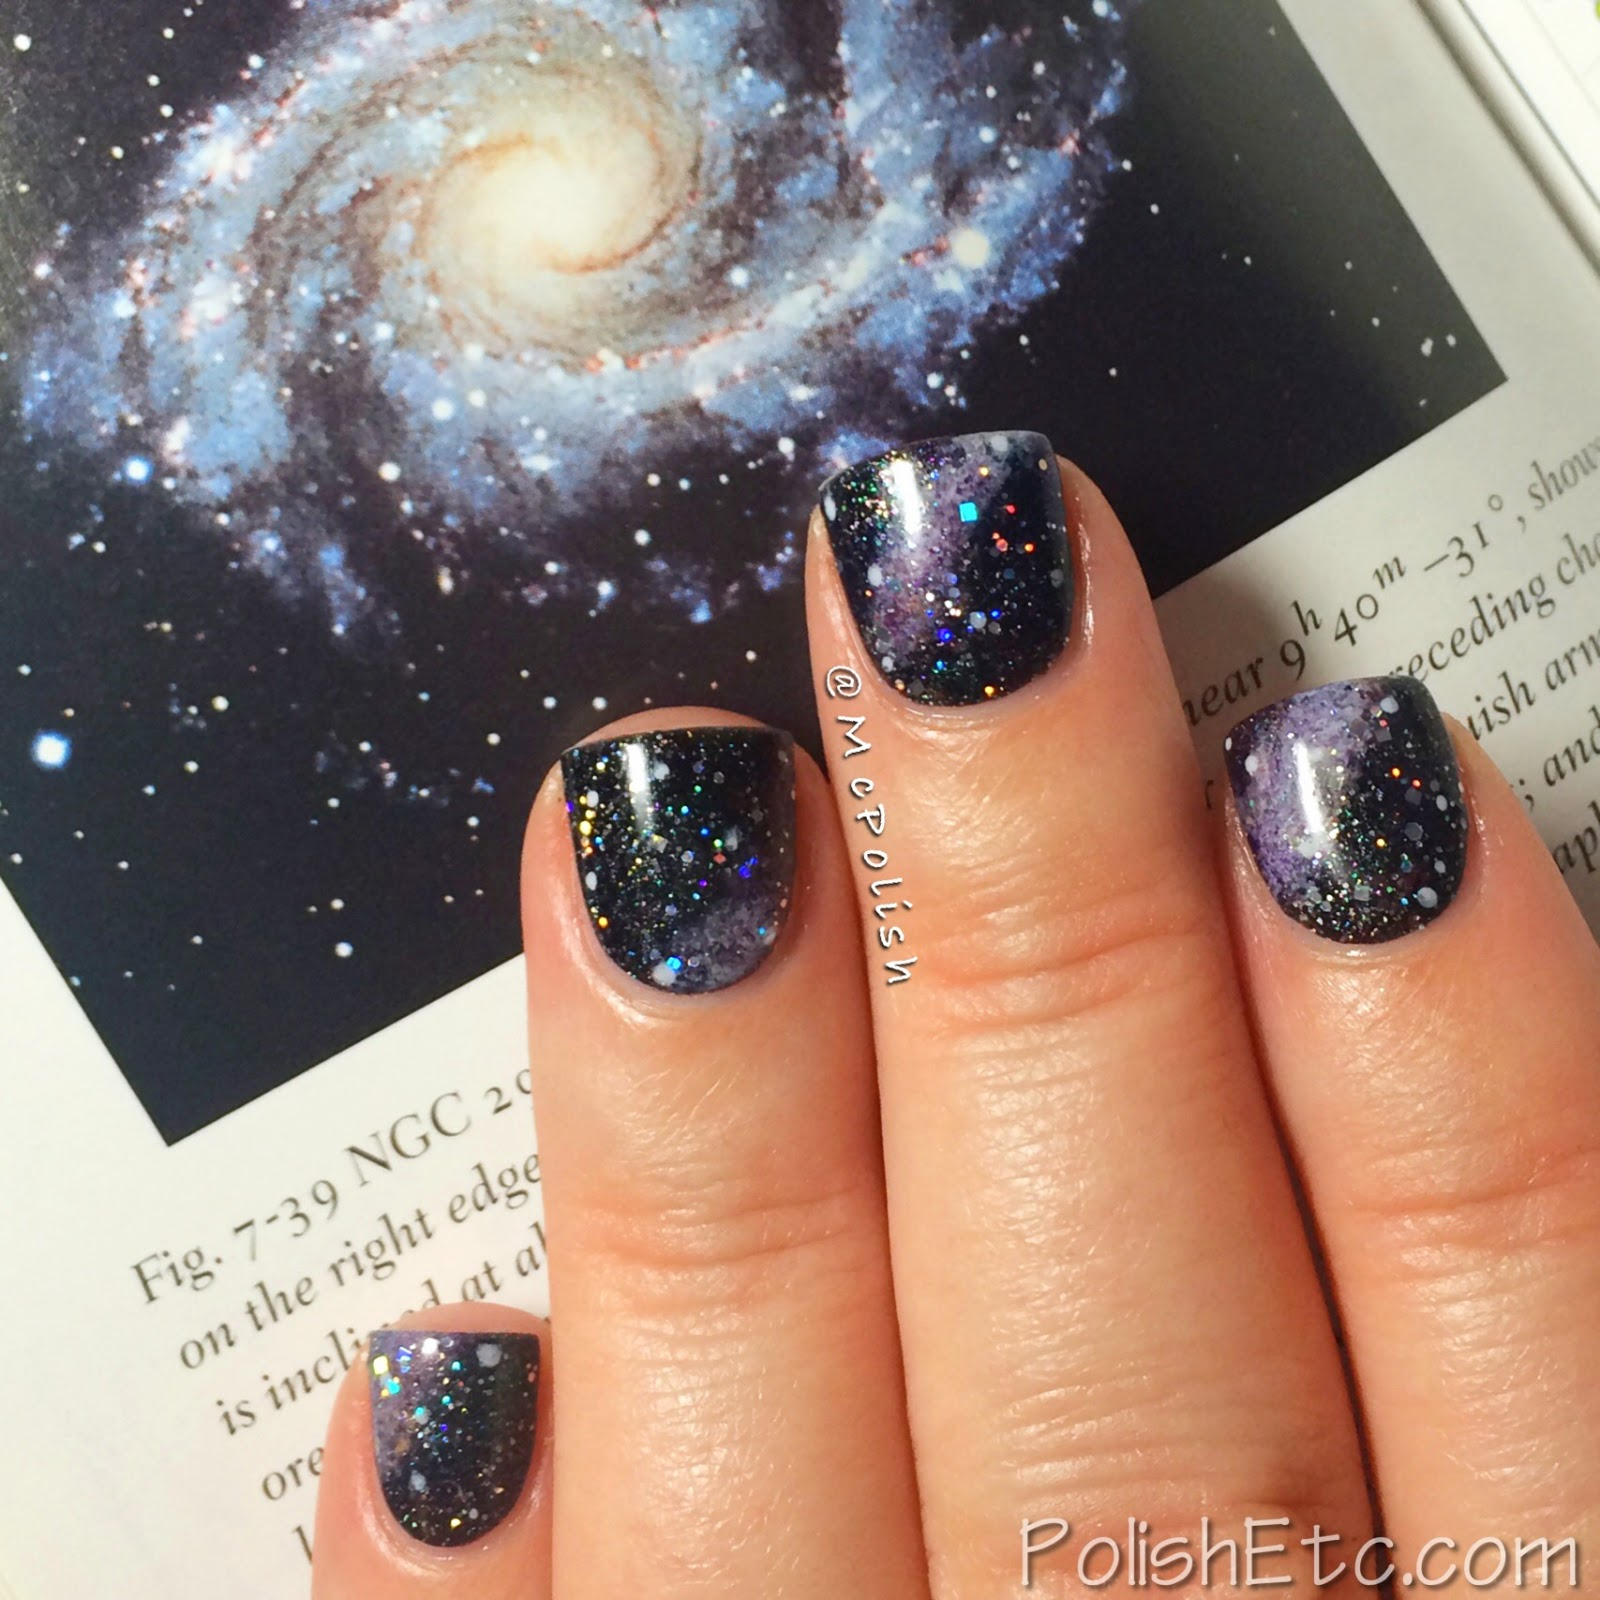 31 Day Nail Art Challenge - #31dc2014 - McPolish - GALAXy